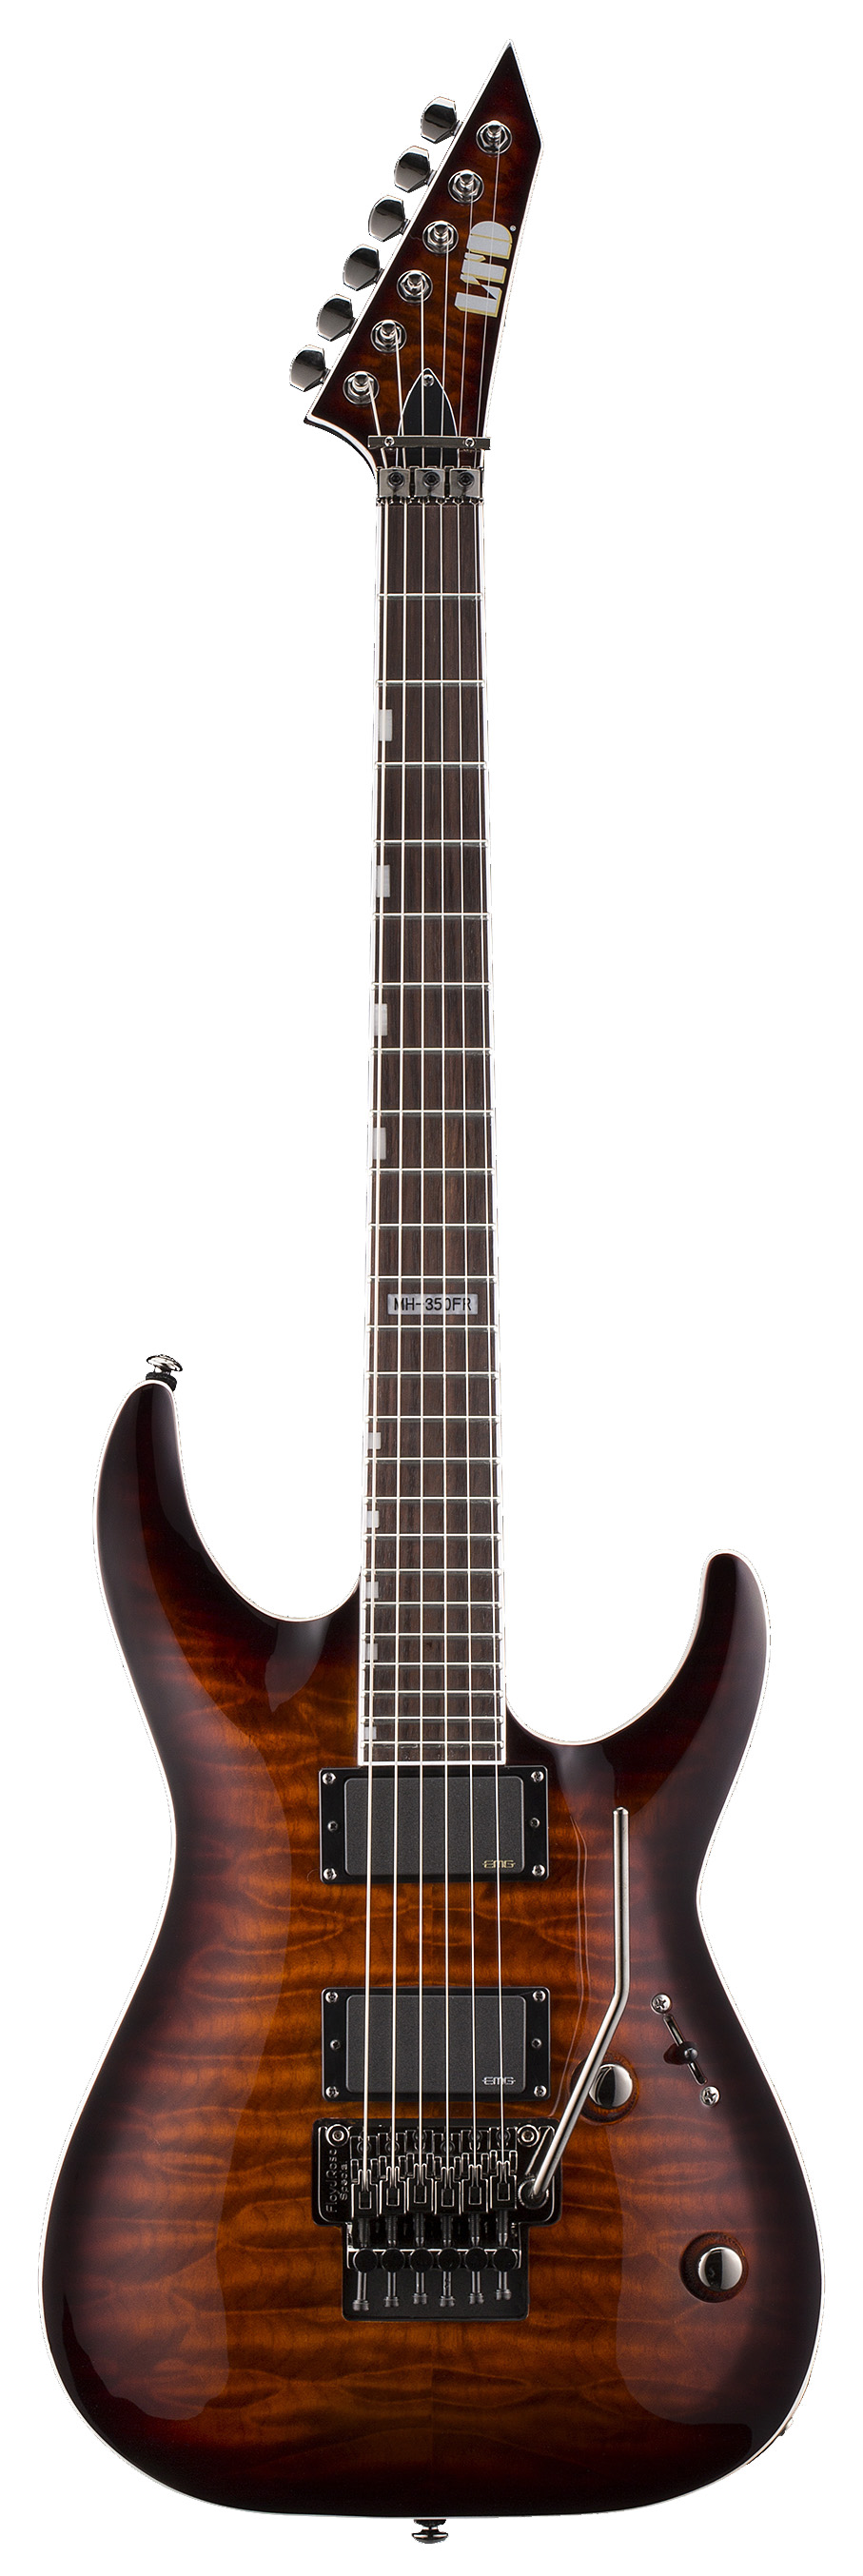 ESP LTD MH-350FR DBSB MH SERIES Electric Guitar with Quilted Maple Top Dark Brown Sunburst Finish